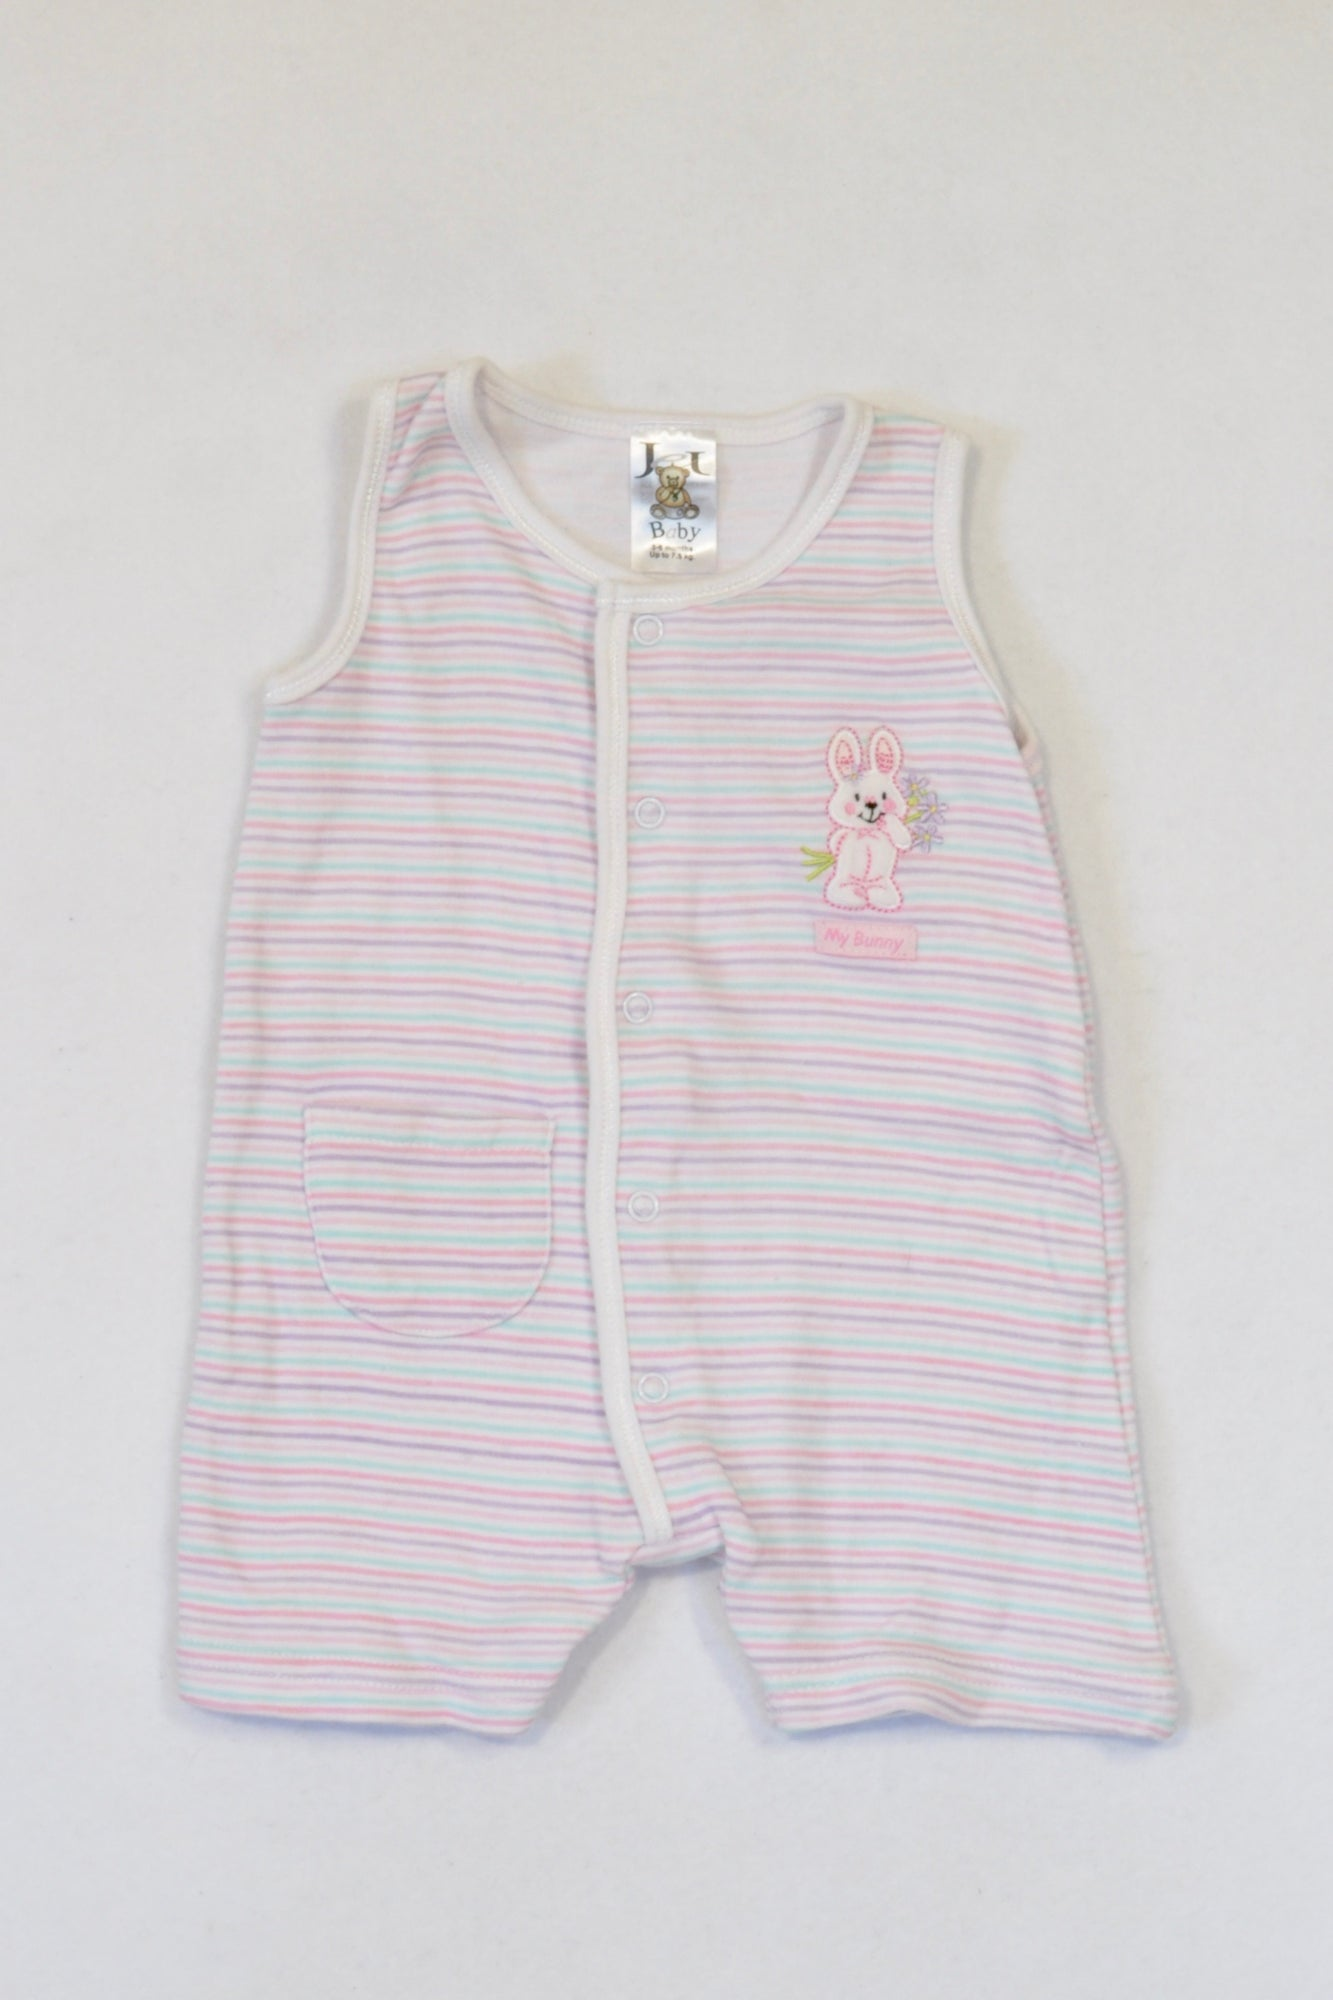 Edgars Purple & Pink Striped Romper Girls 3-6 months